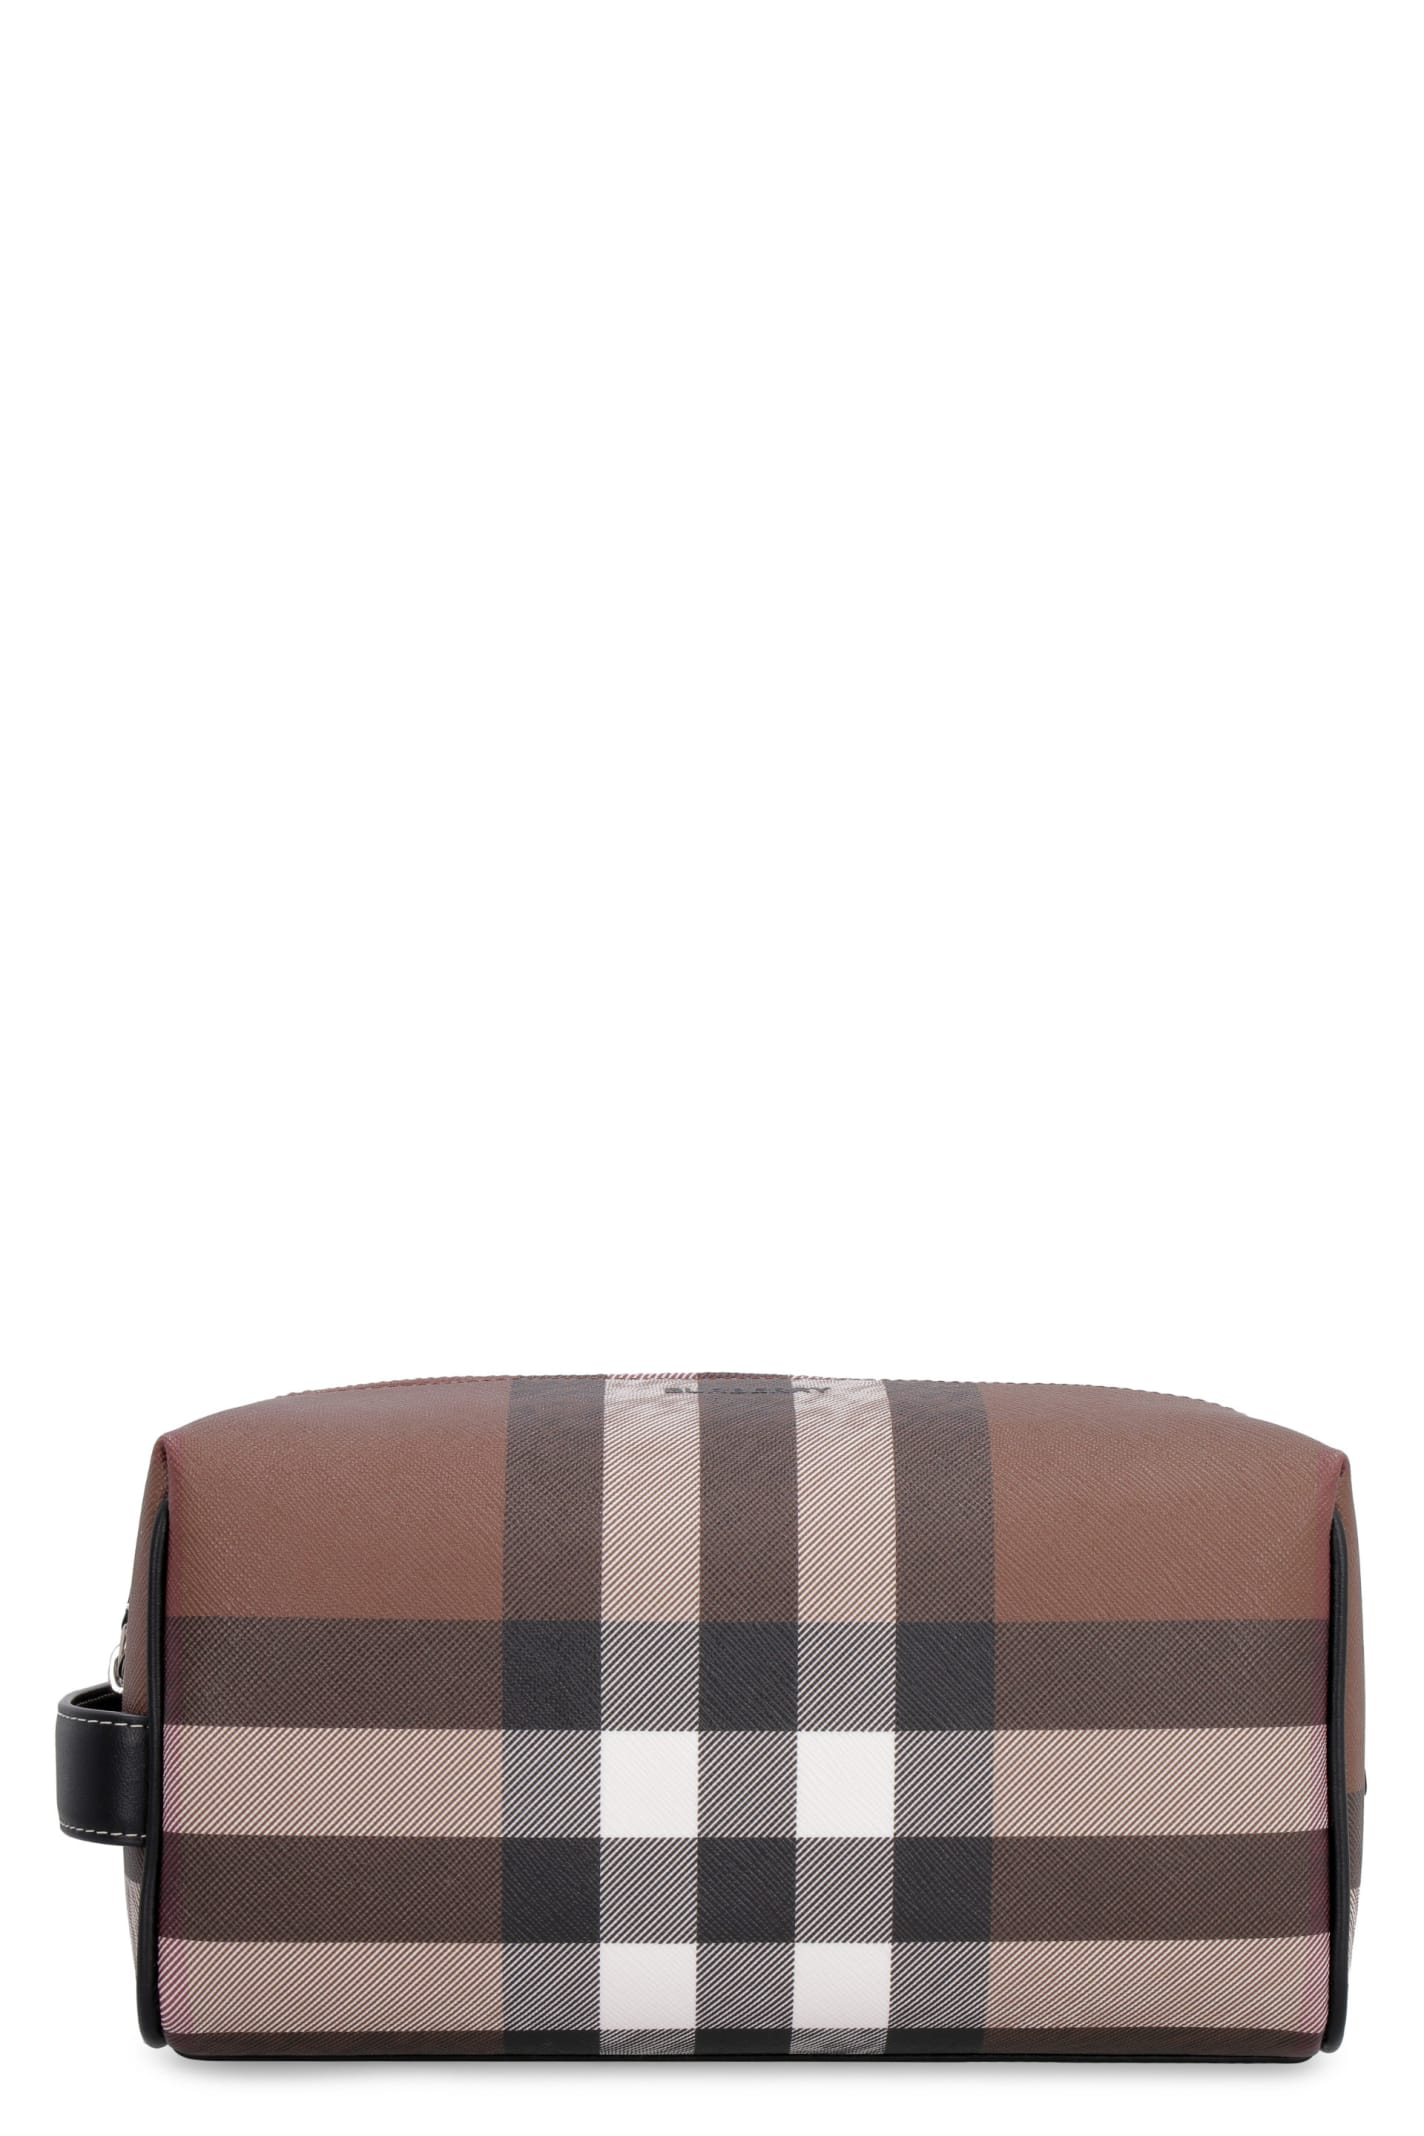 Burberry Leathers E-CANVAS BEAUTY CASE